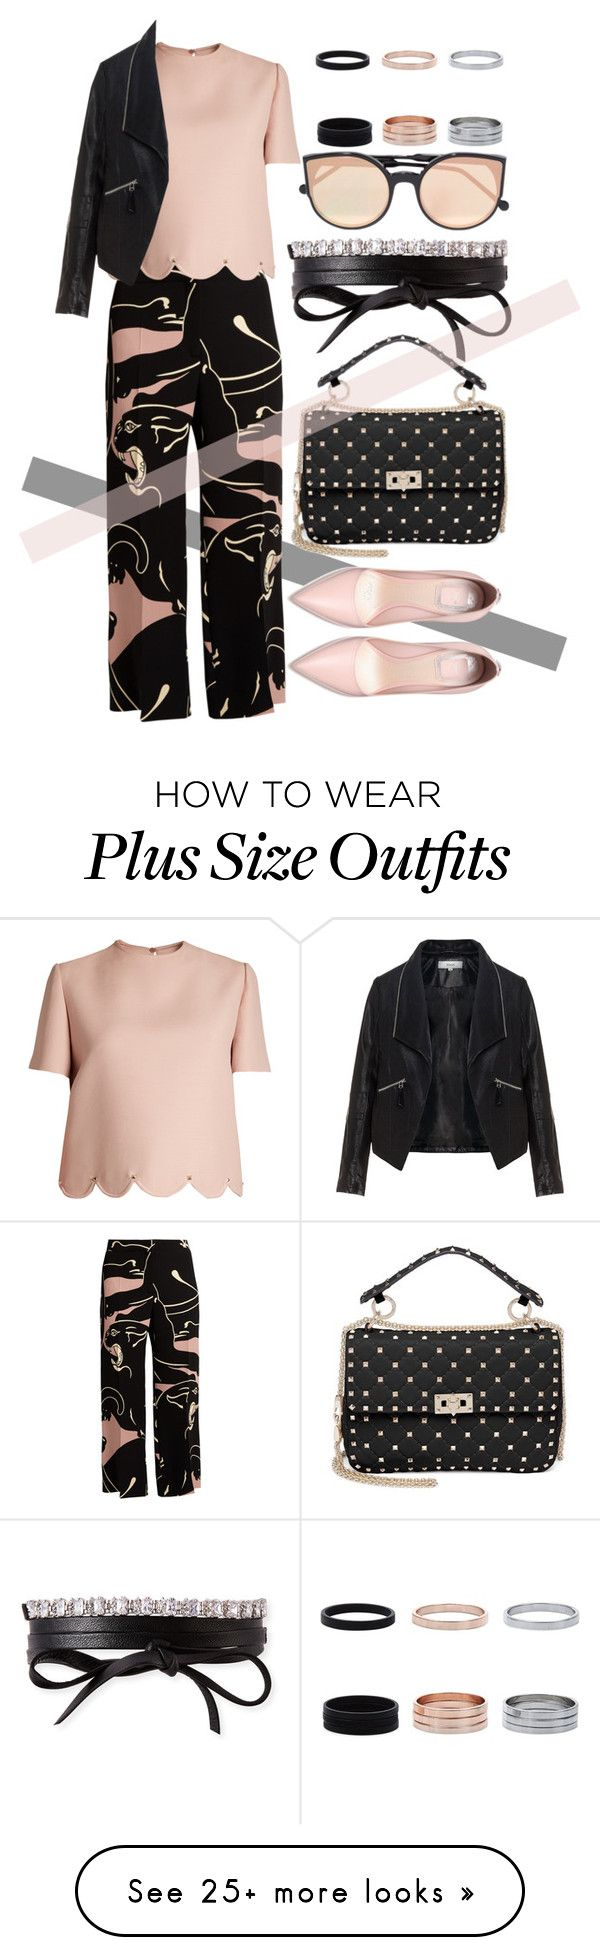 """Untitled #722"" by ssm1562 on Polyvore featuring Valentino, Zizzi, Fallon and RetroSuperFuture"